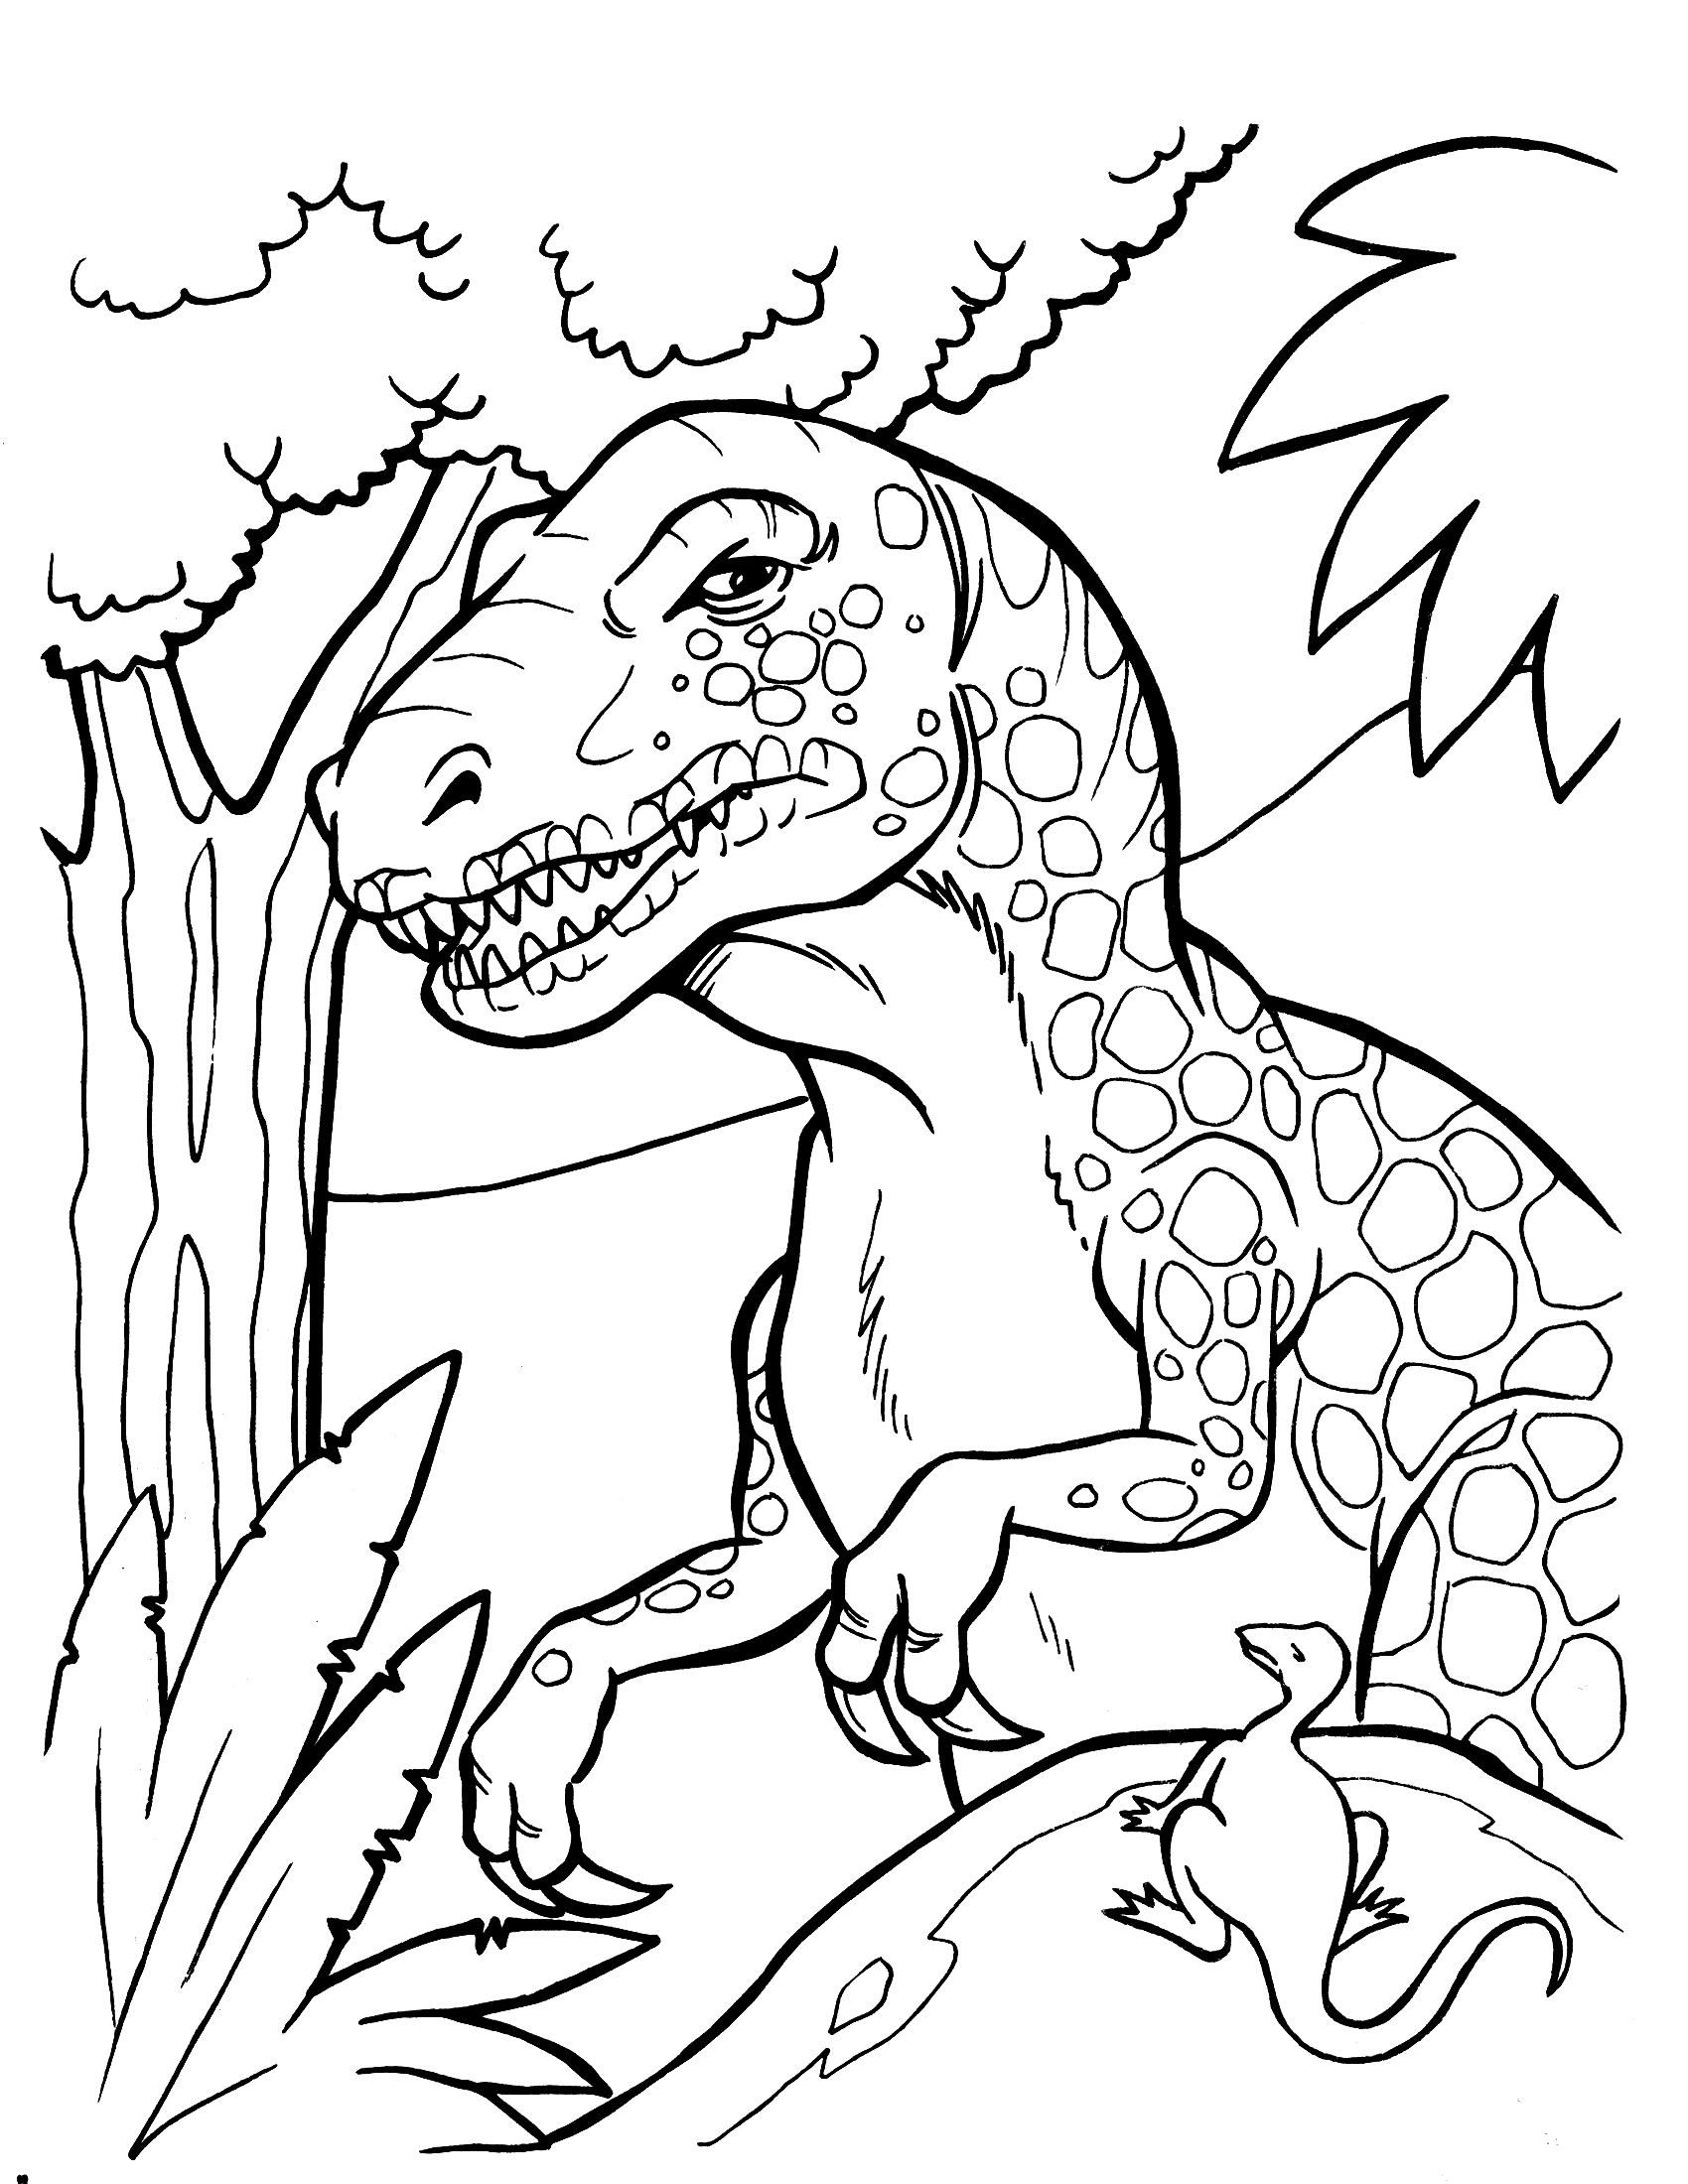 1700x2200 Free Printable Dinosaur Coloring Pages Collection